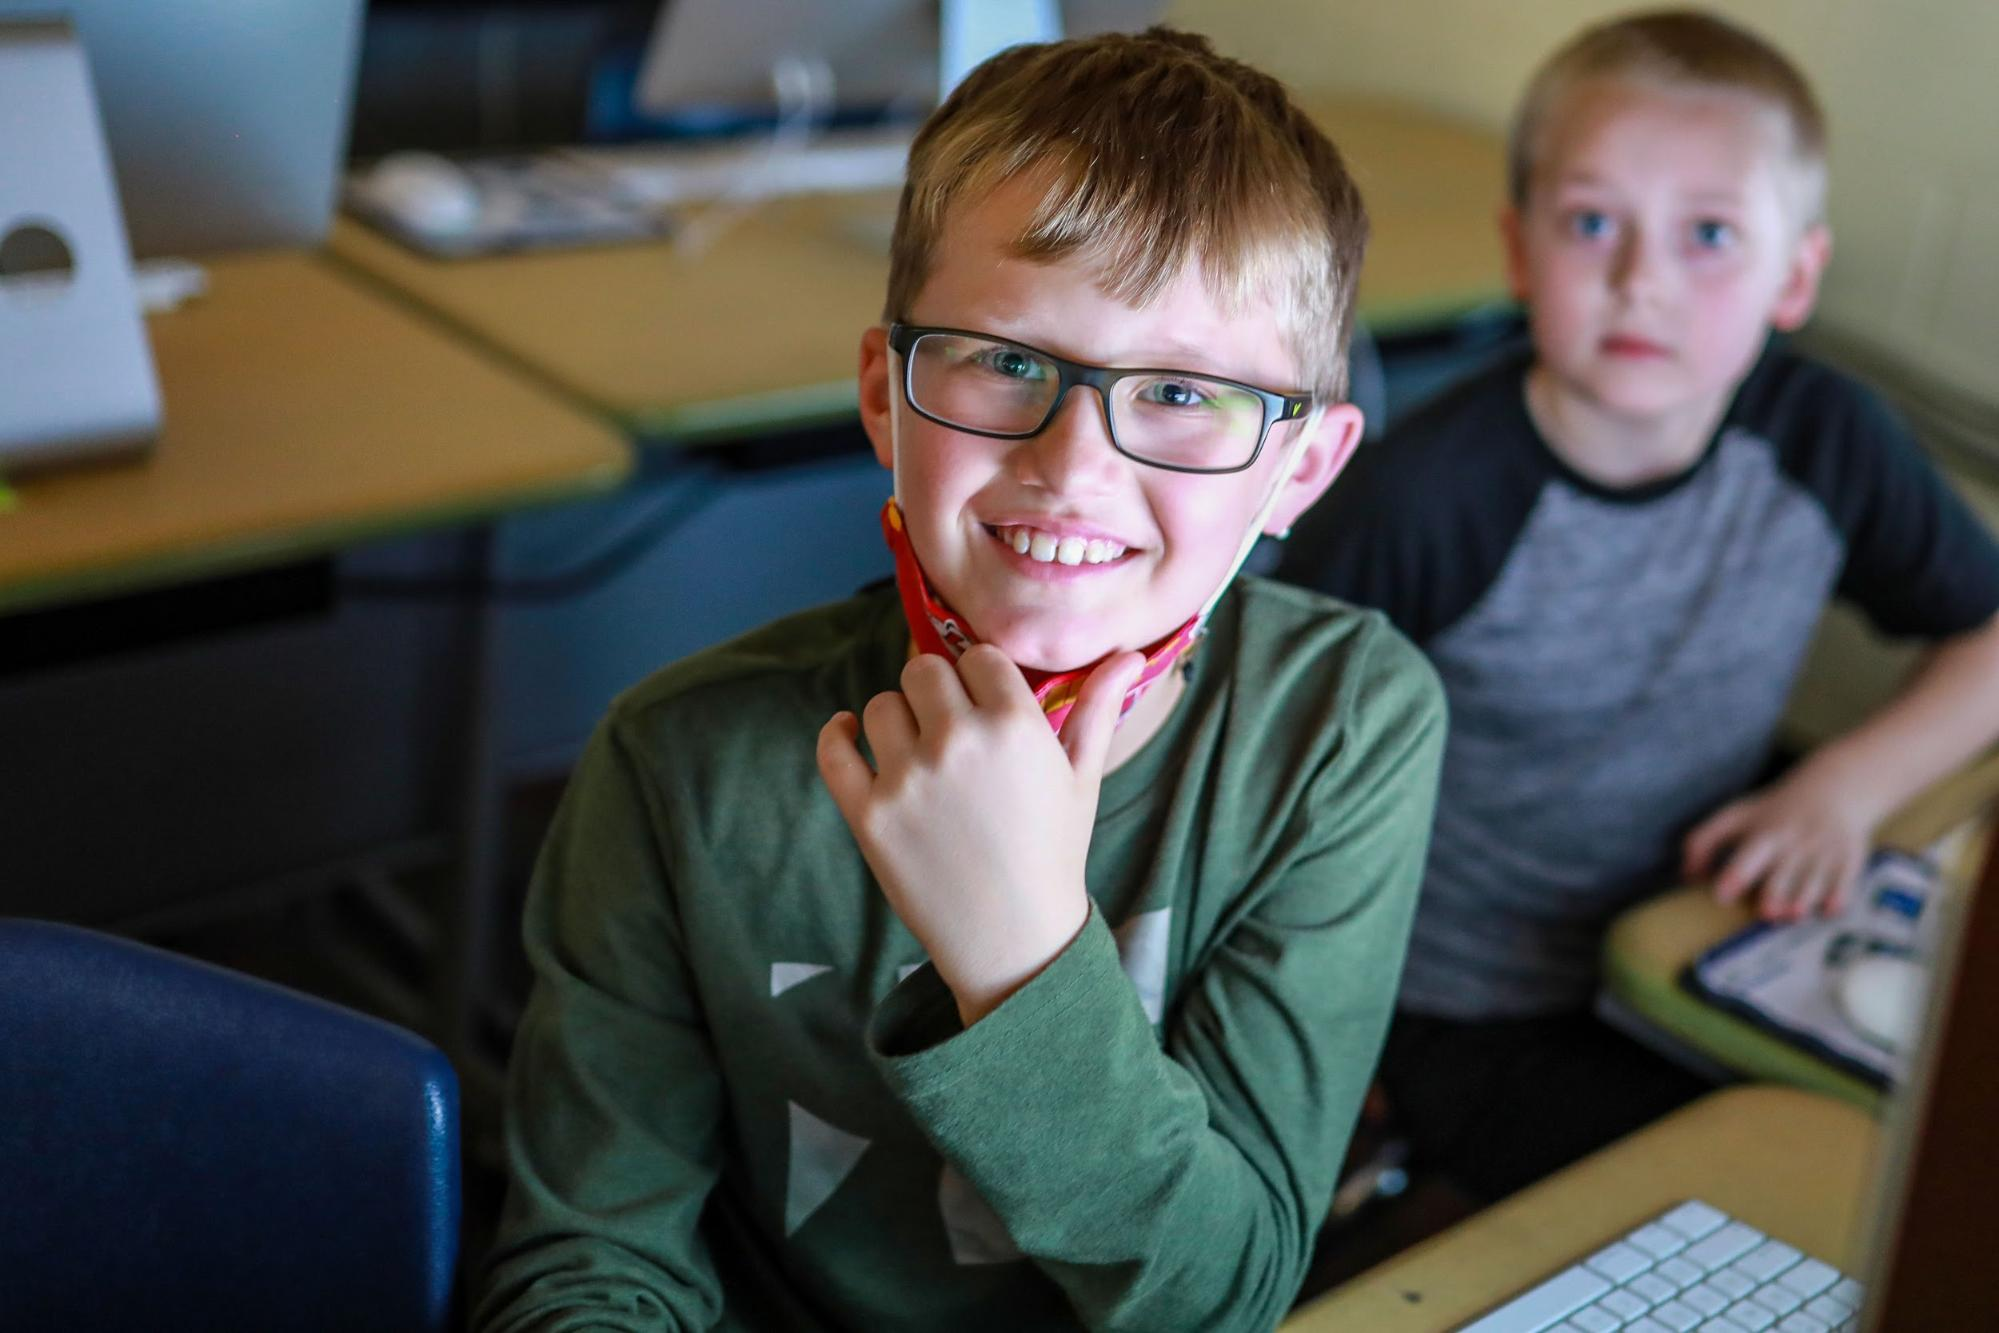 Elementary student smiling in a computer lab